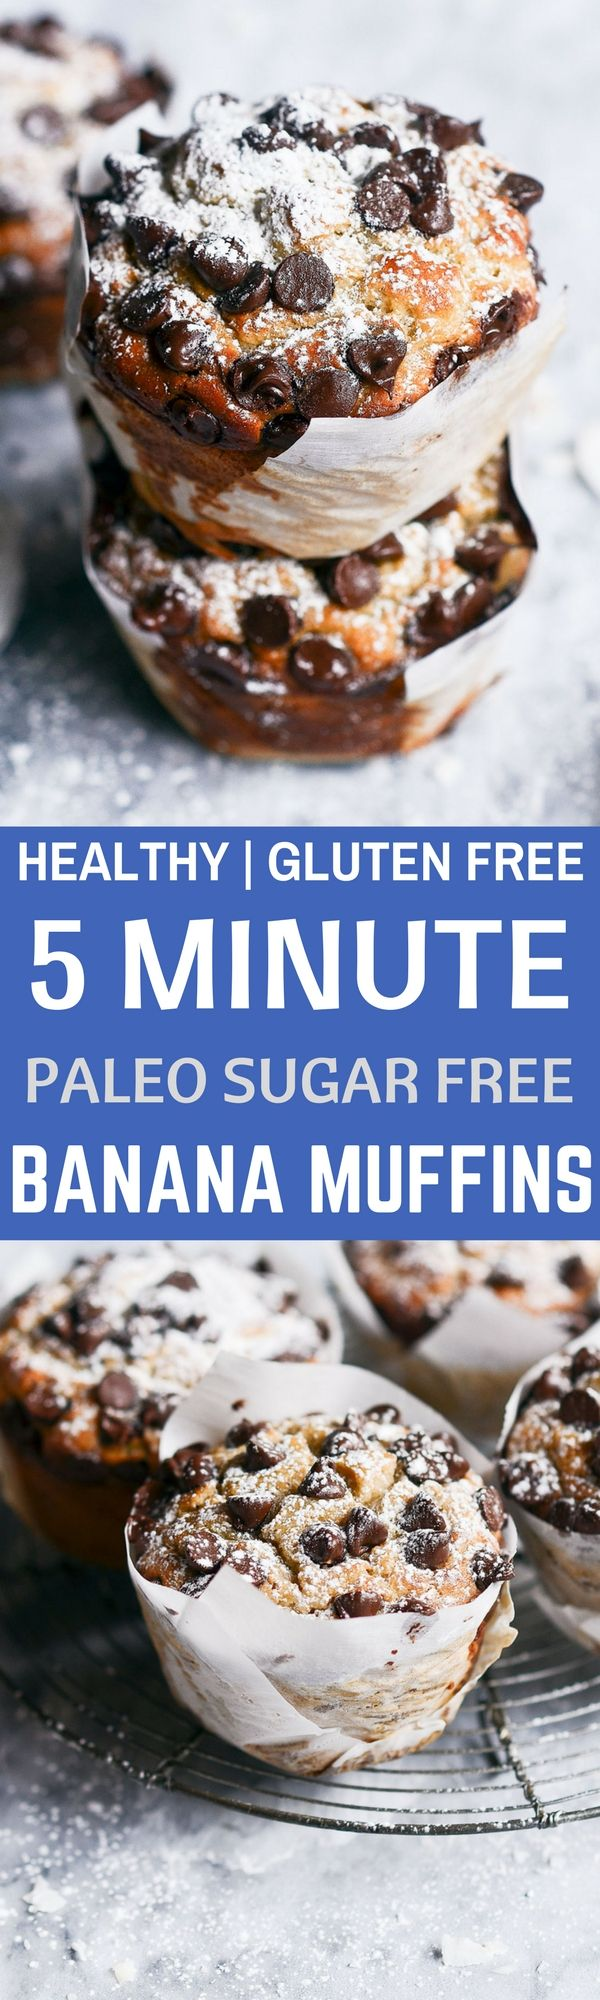 Healthy Gluten Free Banana bread breakfast muffins made in 5 minutes! Easy sugar free, paleo, and grain free breakfast recipe.